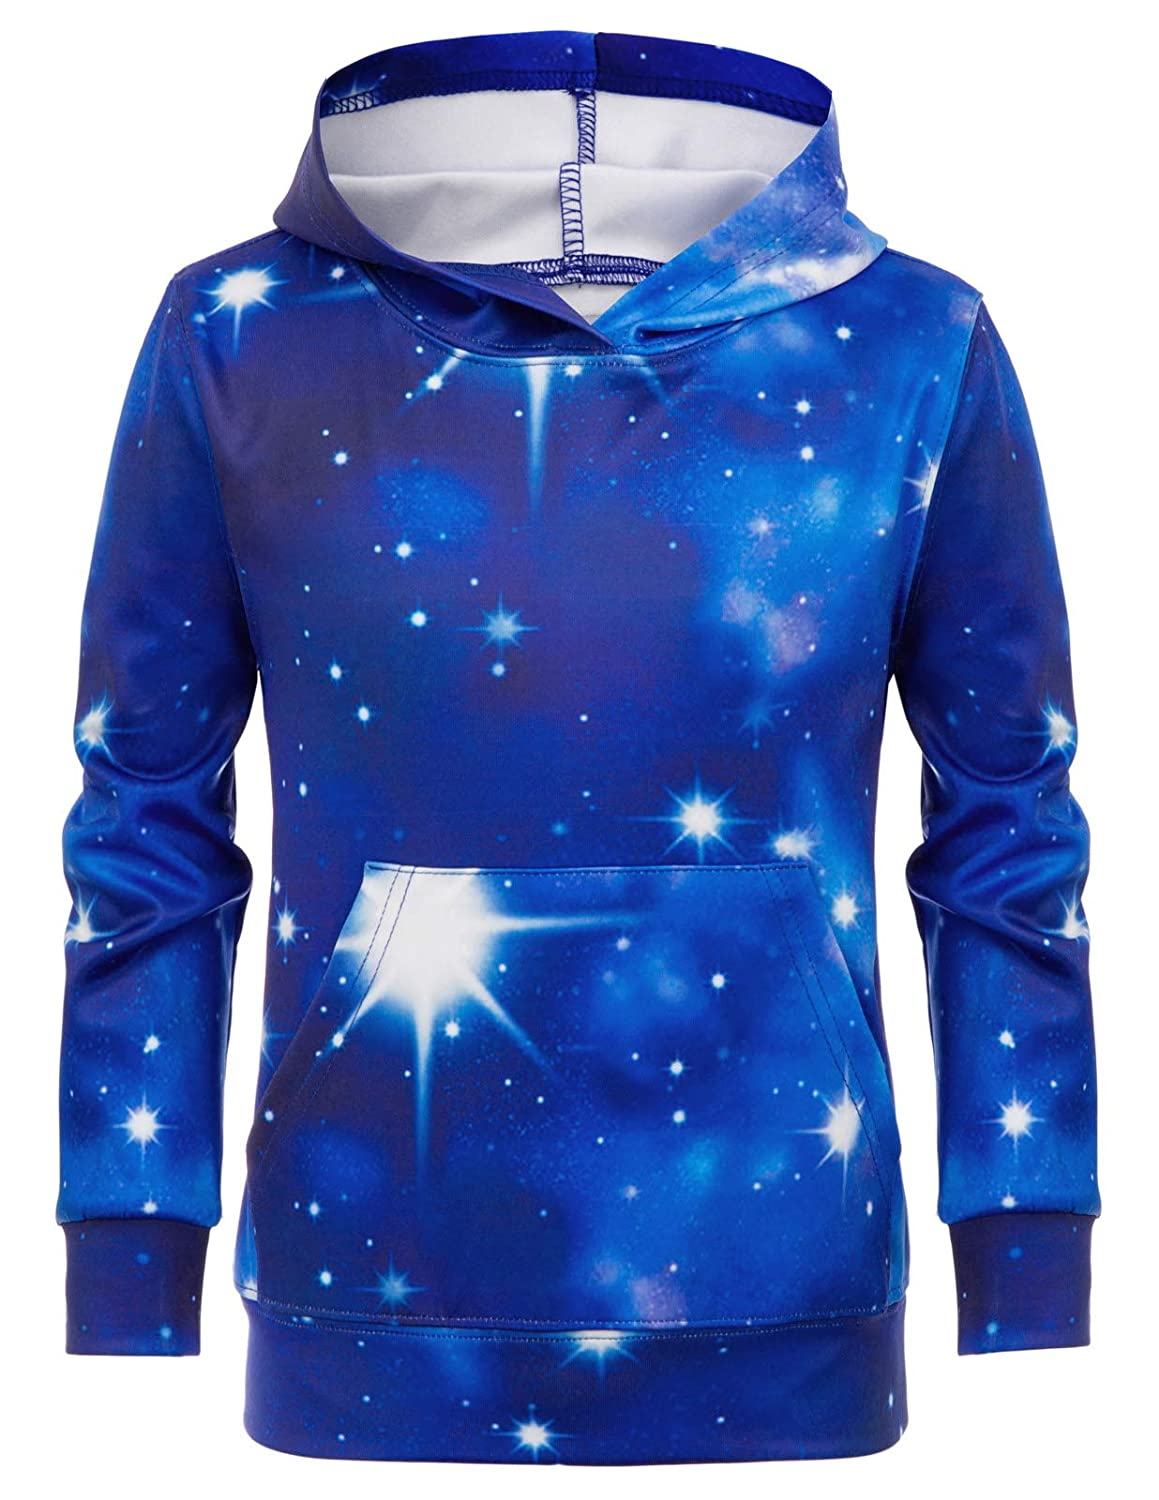 Danna Belle Unisex Galaxy Printing Hoodies Top Pullover with Pocket